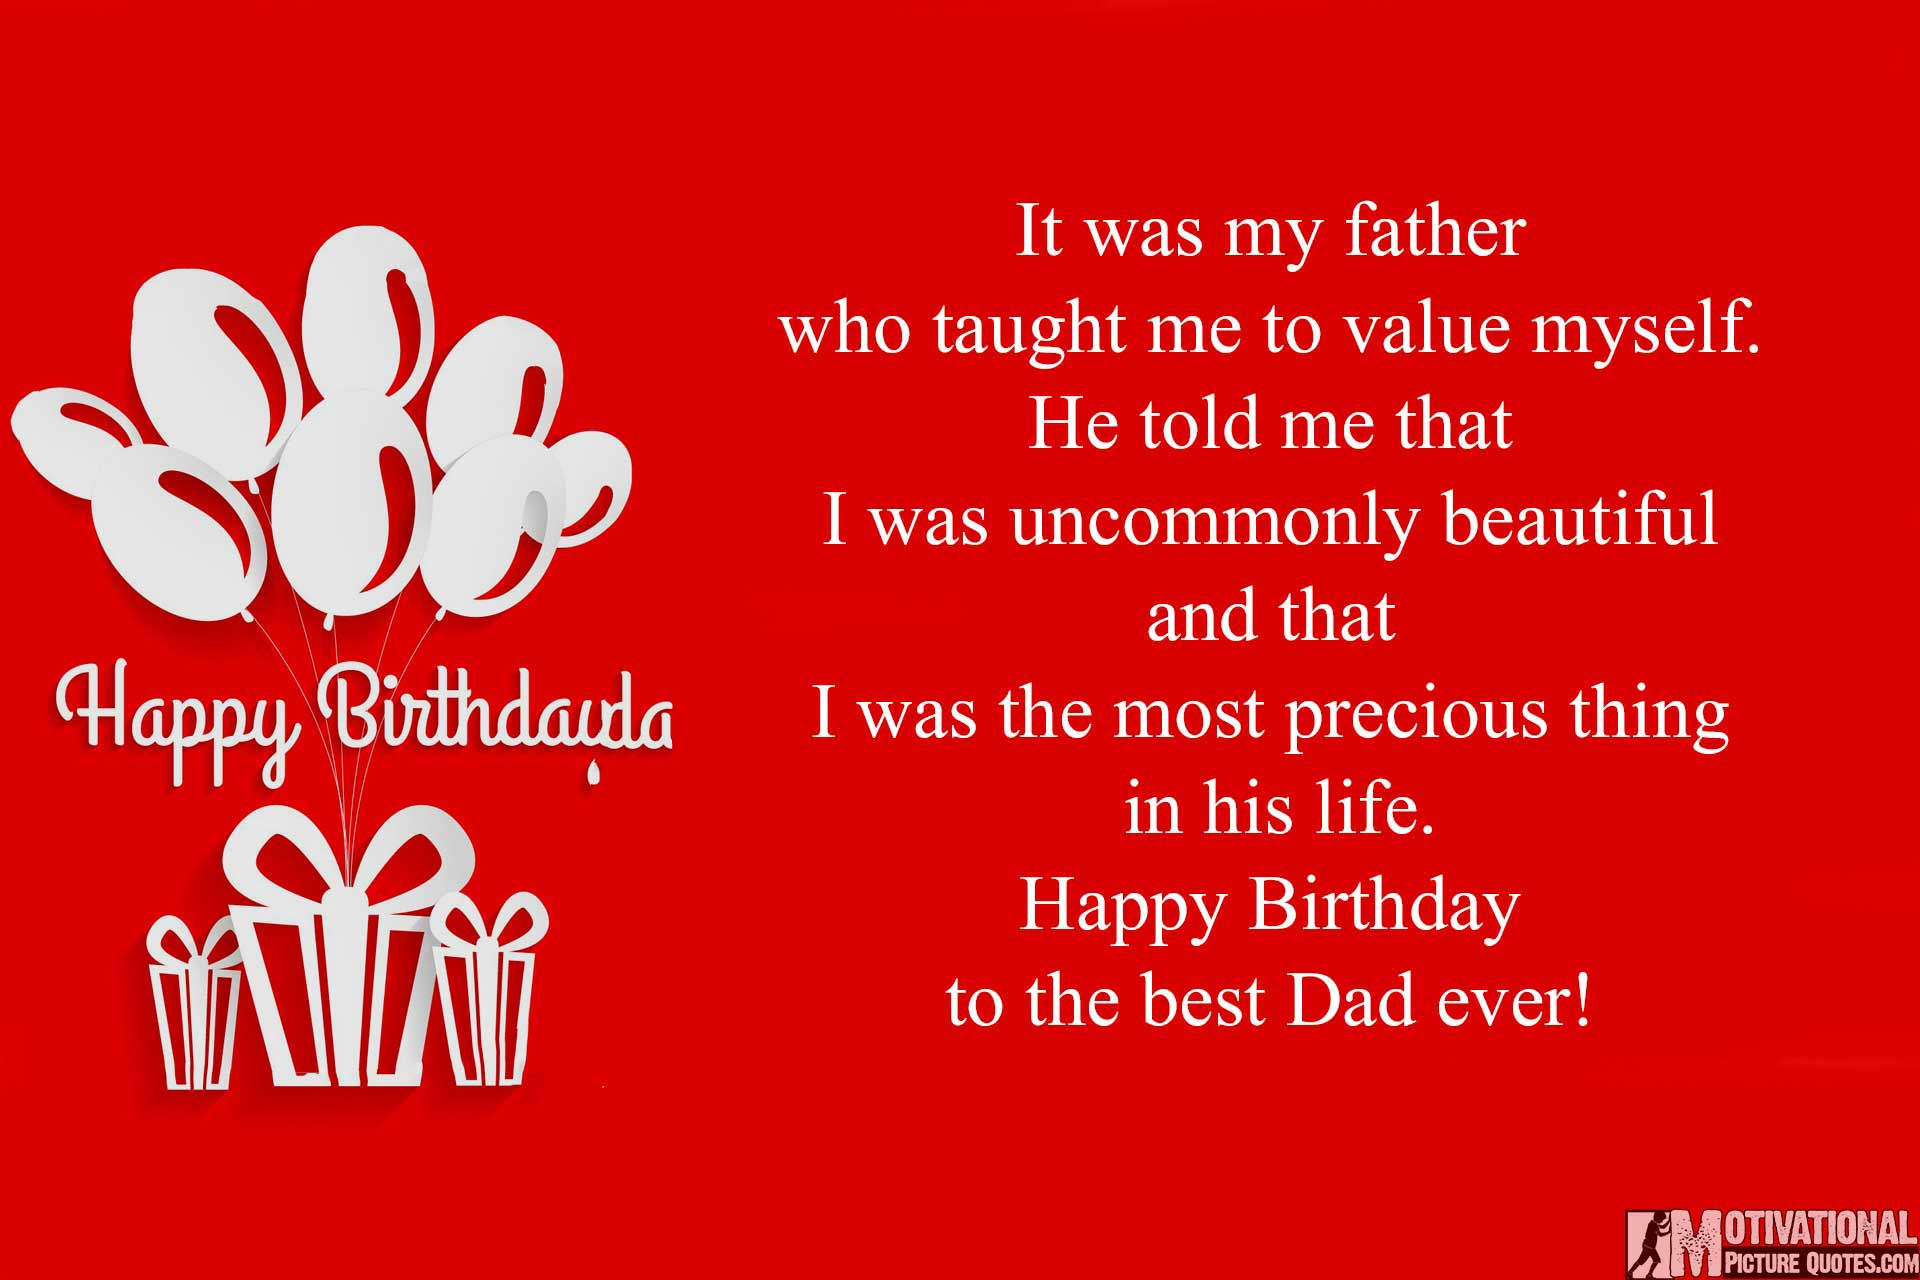 35 inspirational birthday quotes images insbright birthday quotes for father kristyandbryce Image collections